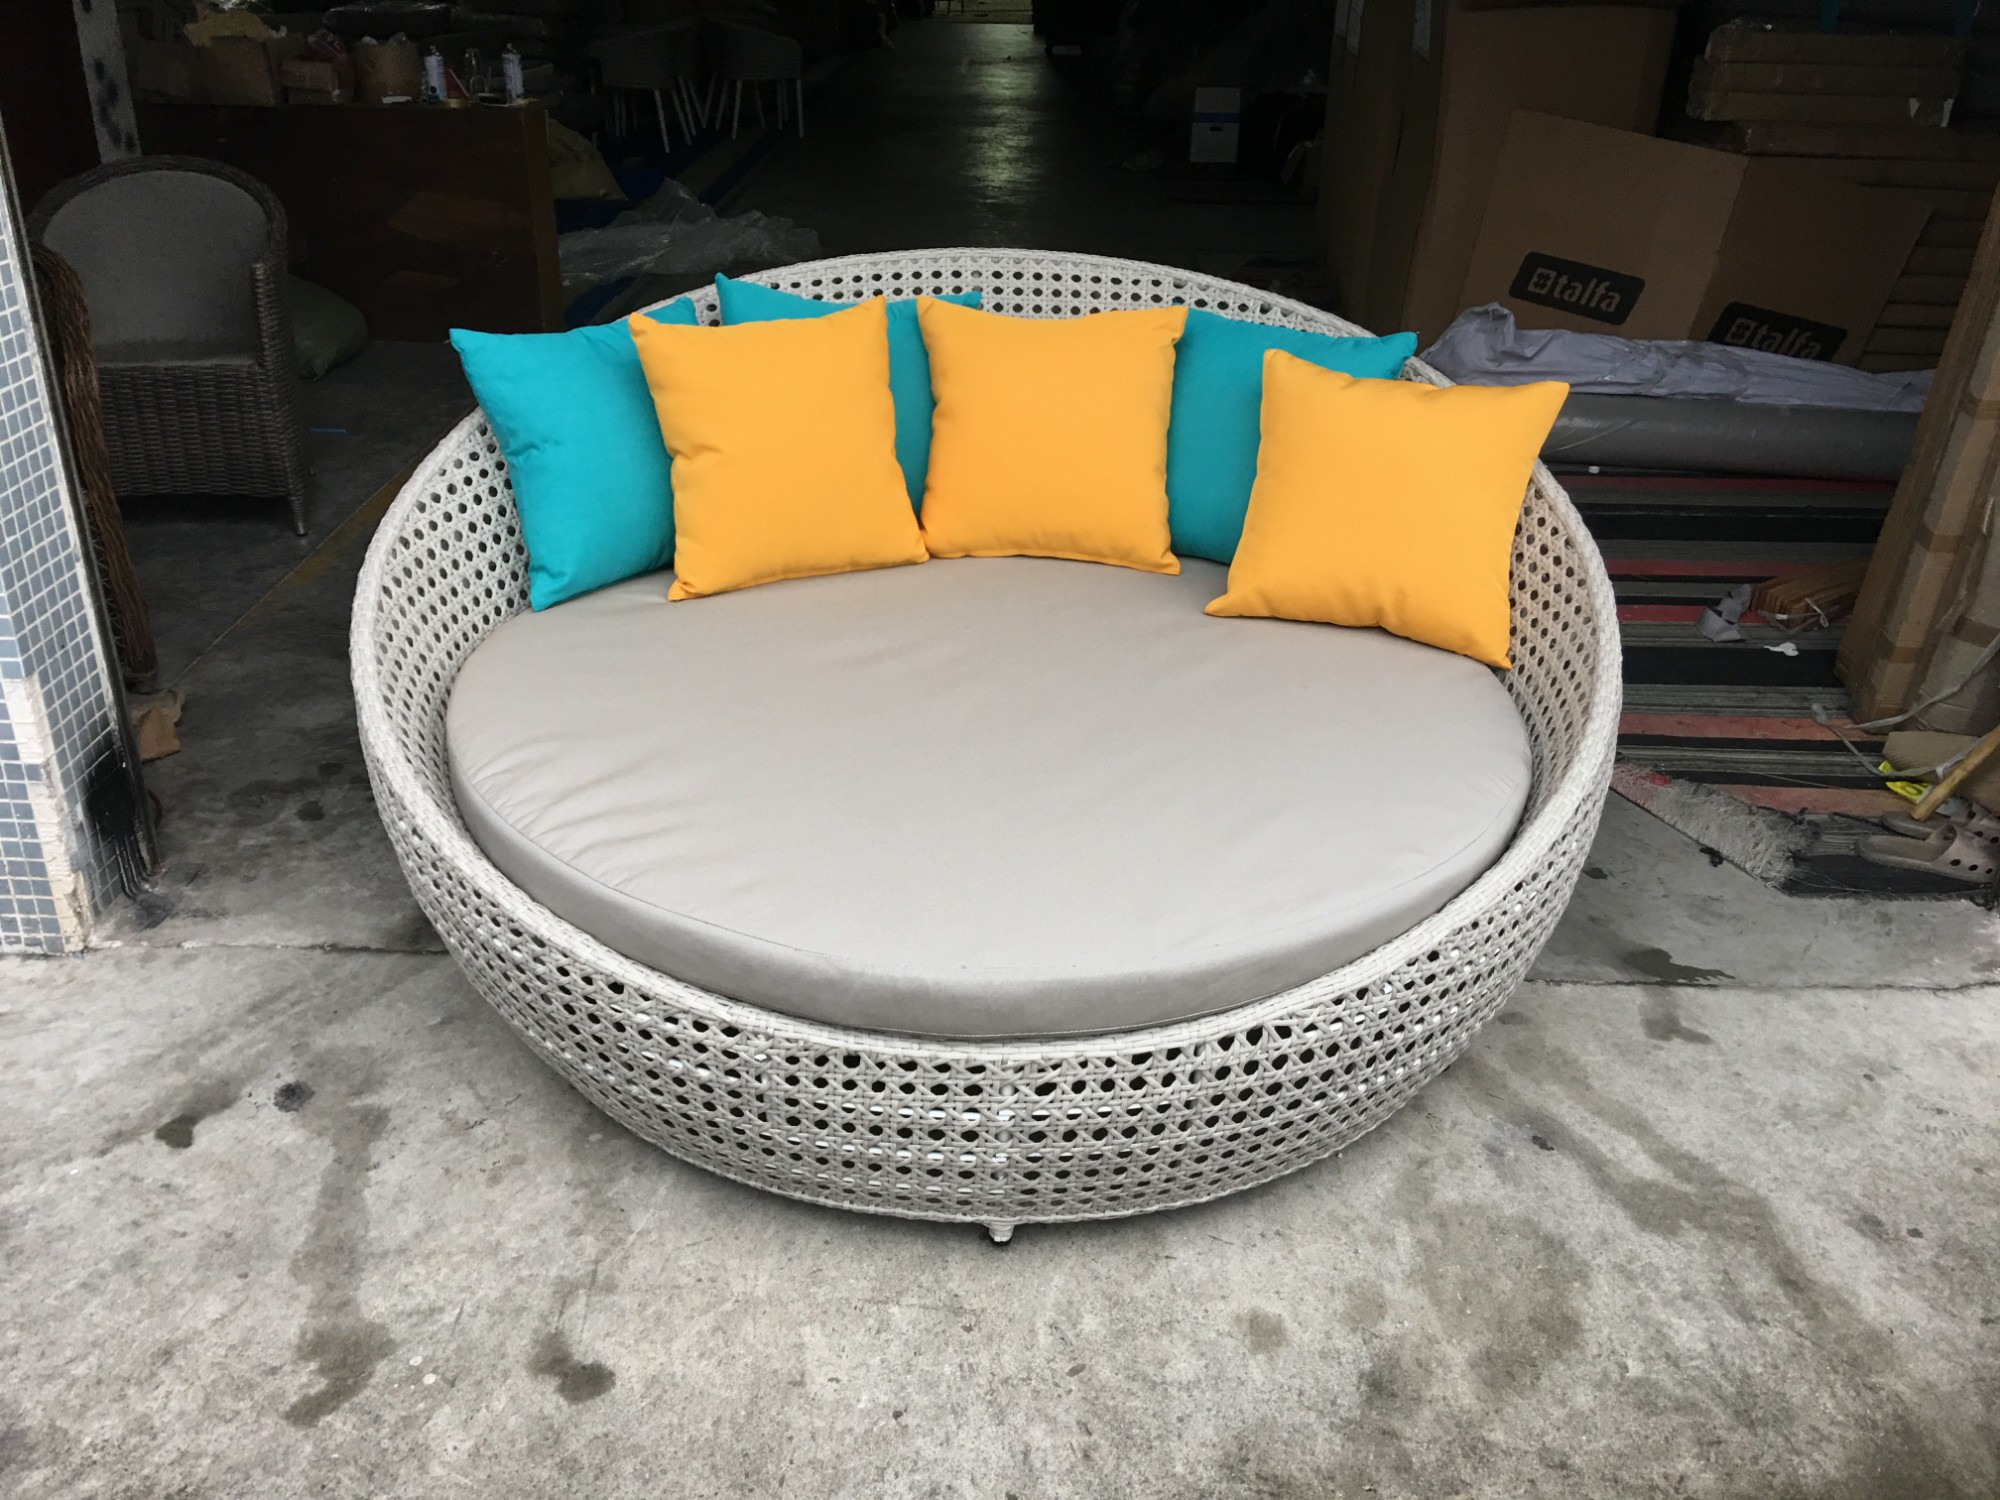 Wicker Outdoor Day Bed Manufacturers, Wicker Outdoor Day Bed Factory, Supply Wicker Outdoor Day Bed